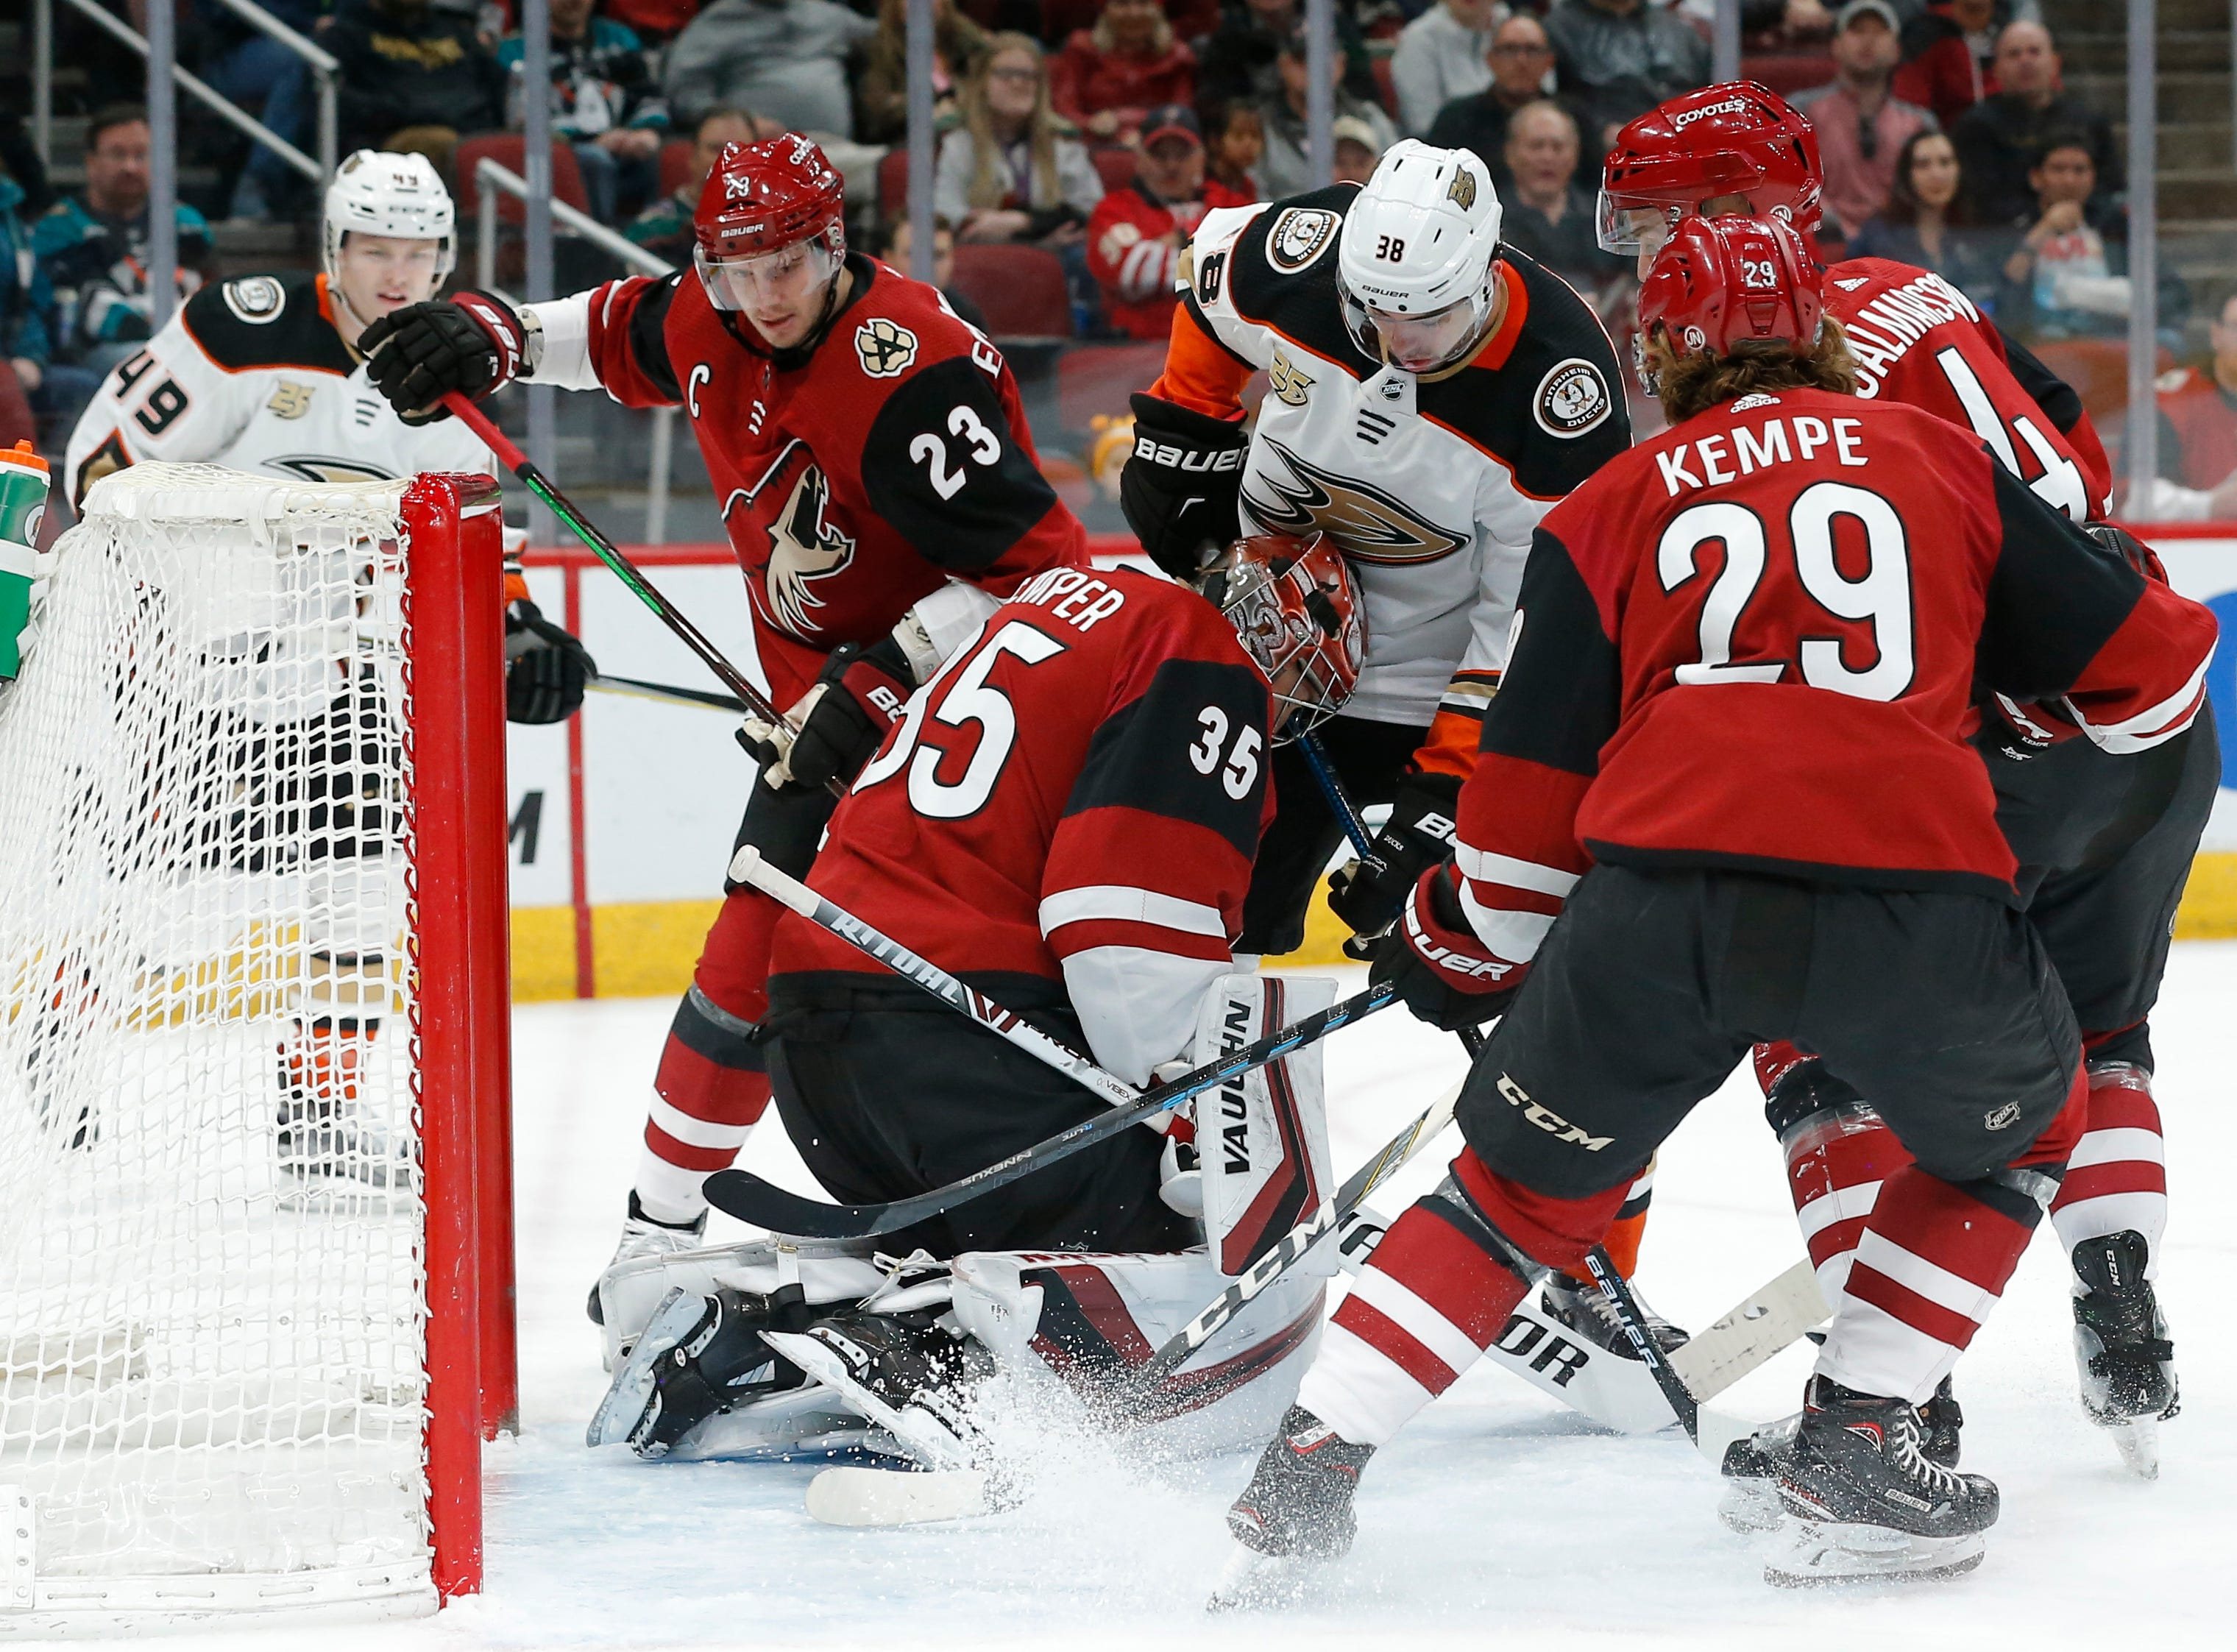 Anaheim Ducks center Derek Grant (38) tries to score against Arizona Coyotes goaltender Darcy Kuemper (35) in the first period during an NHL hockey game, Thursday, March 14, 2019, in Glendale, Ariz.